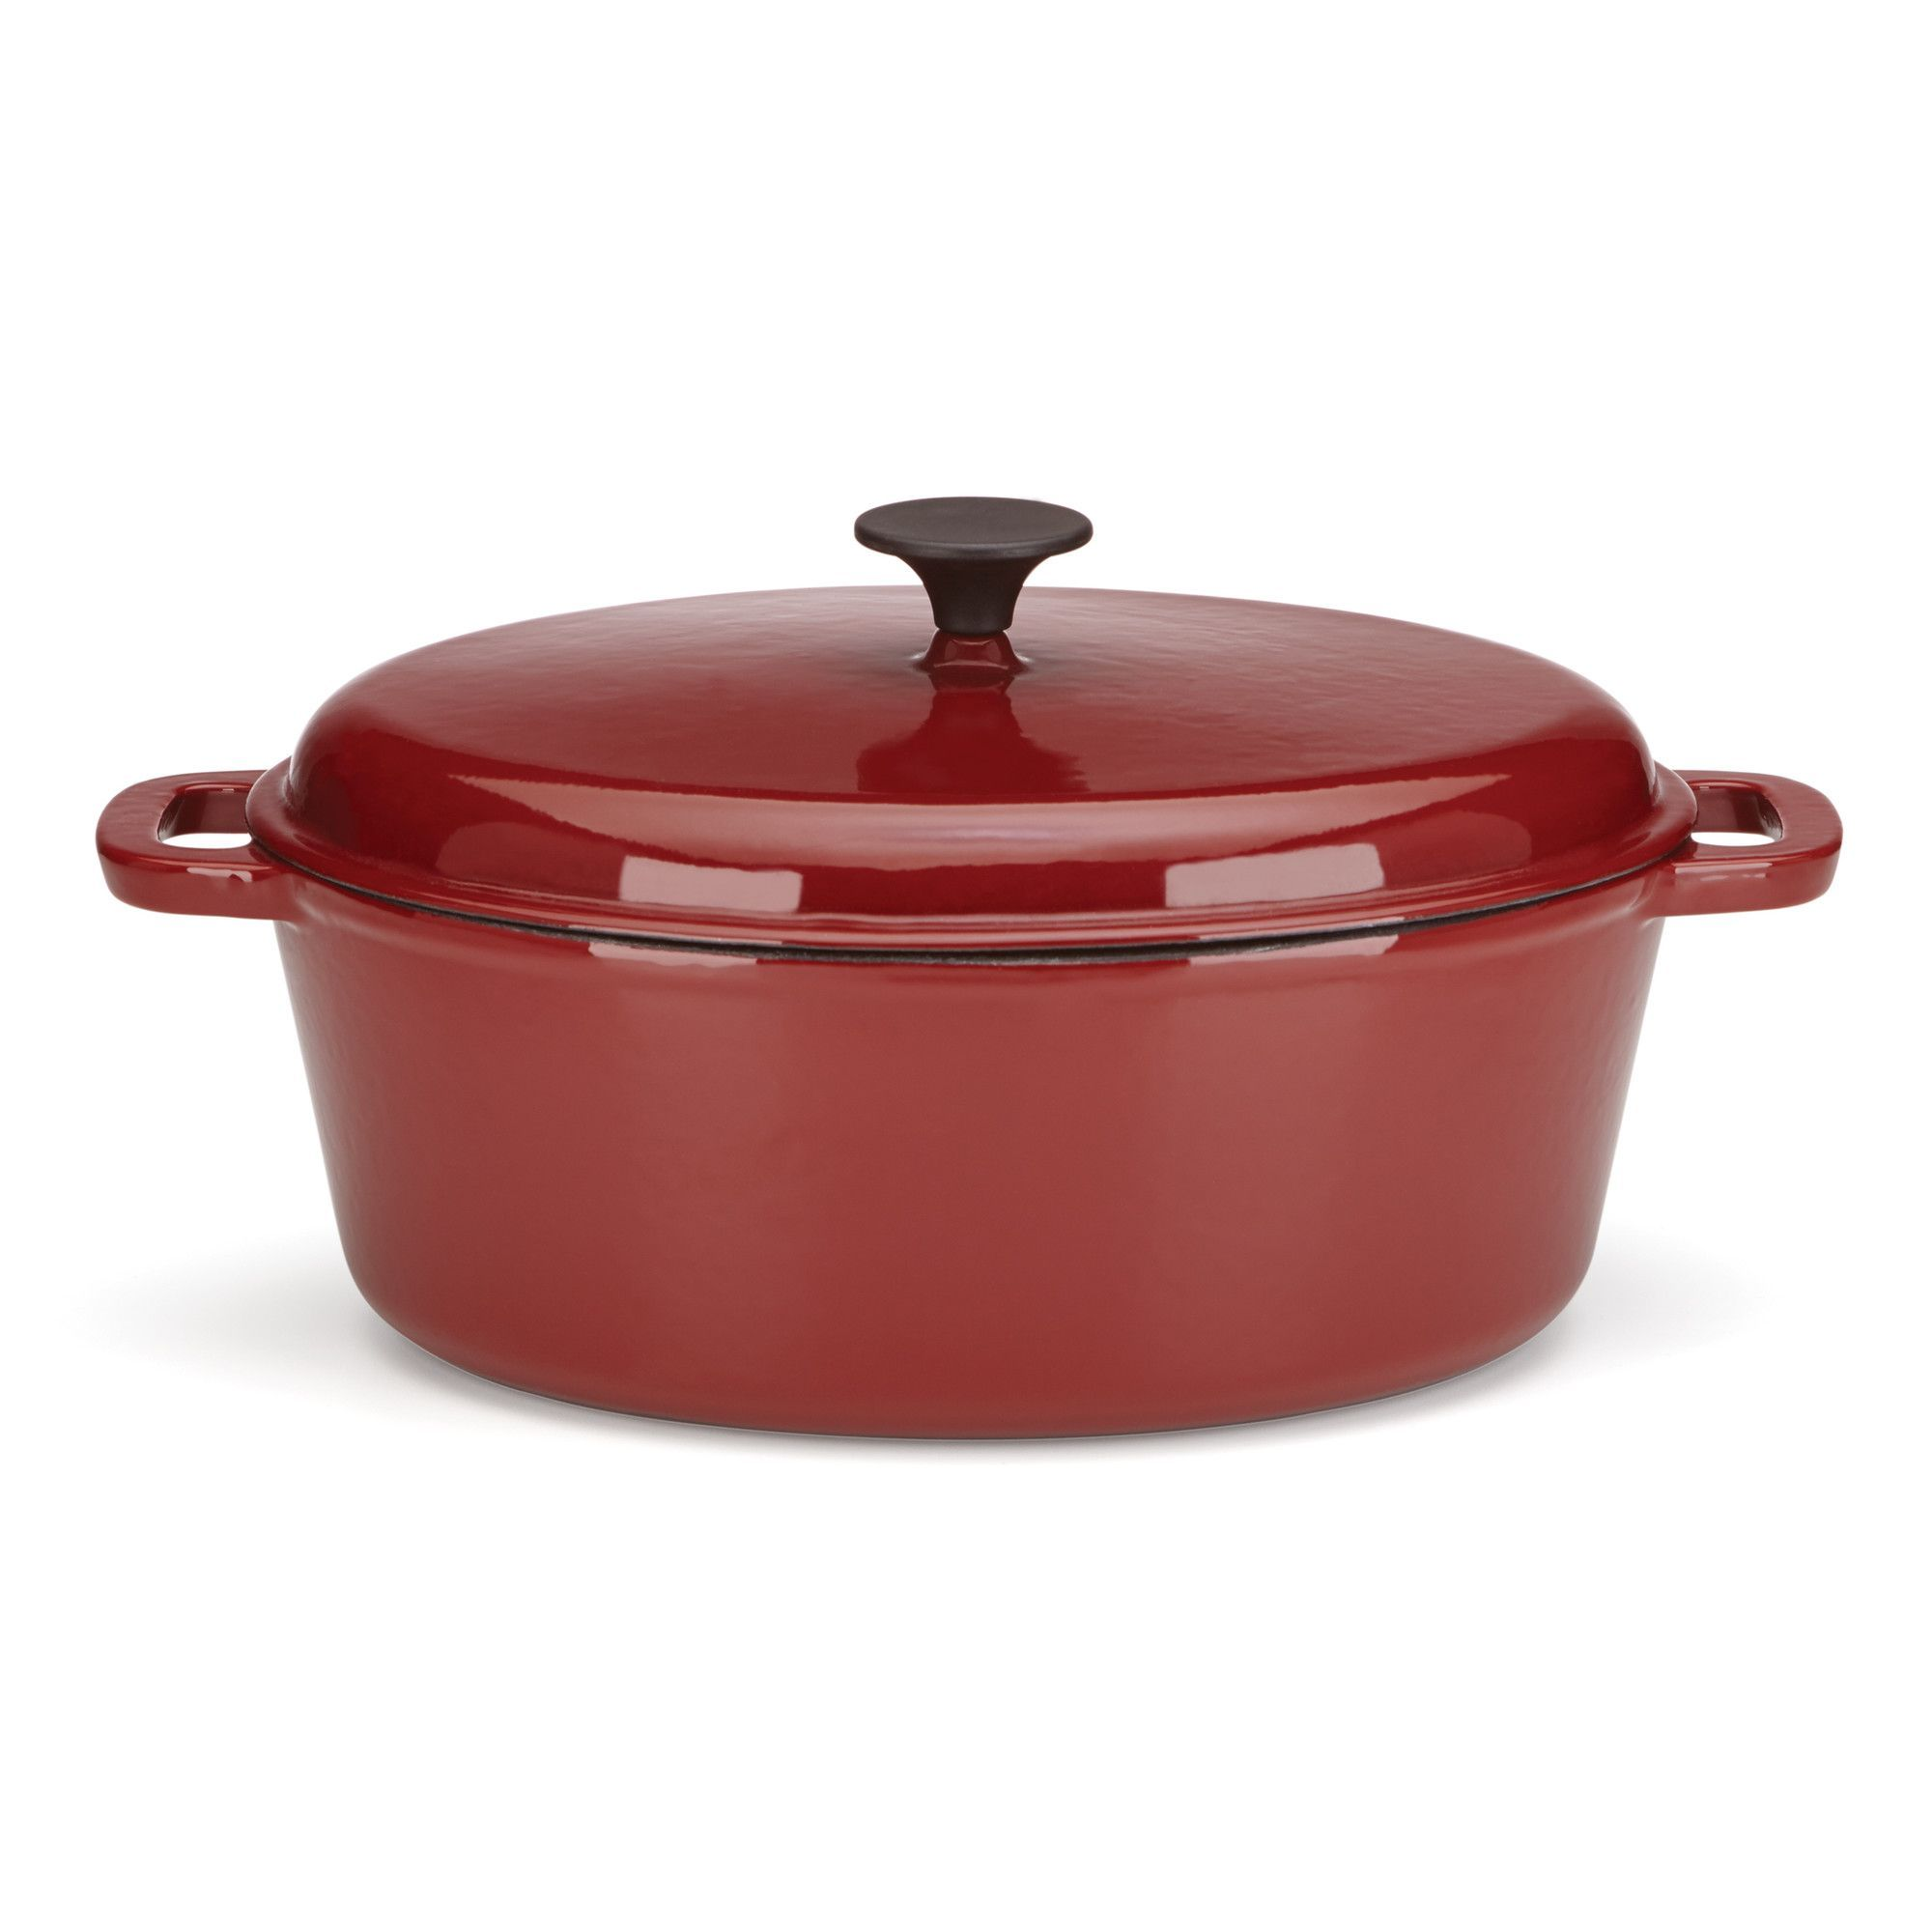 Rick Bayless 6-qt Cast Iron Oval Dutch Oven with Lid